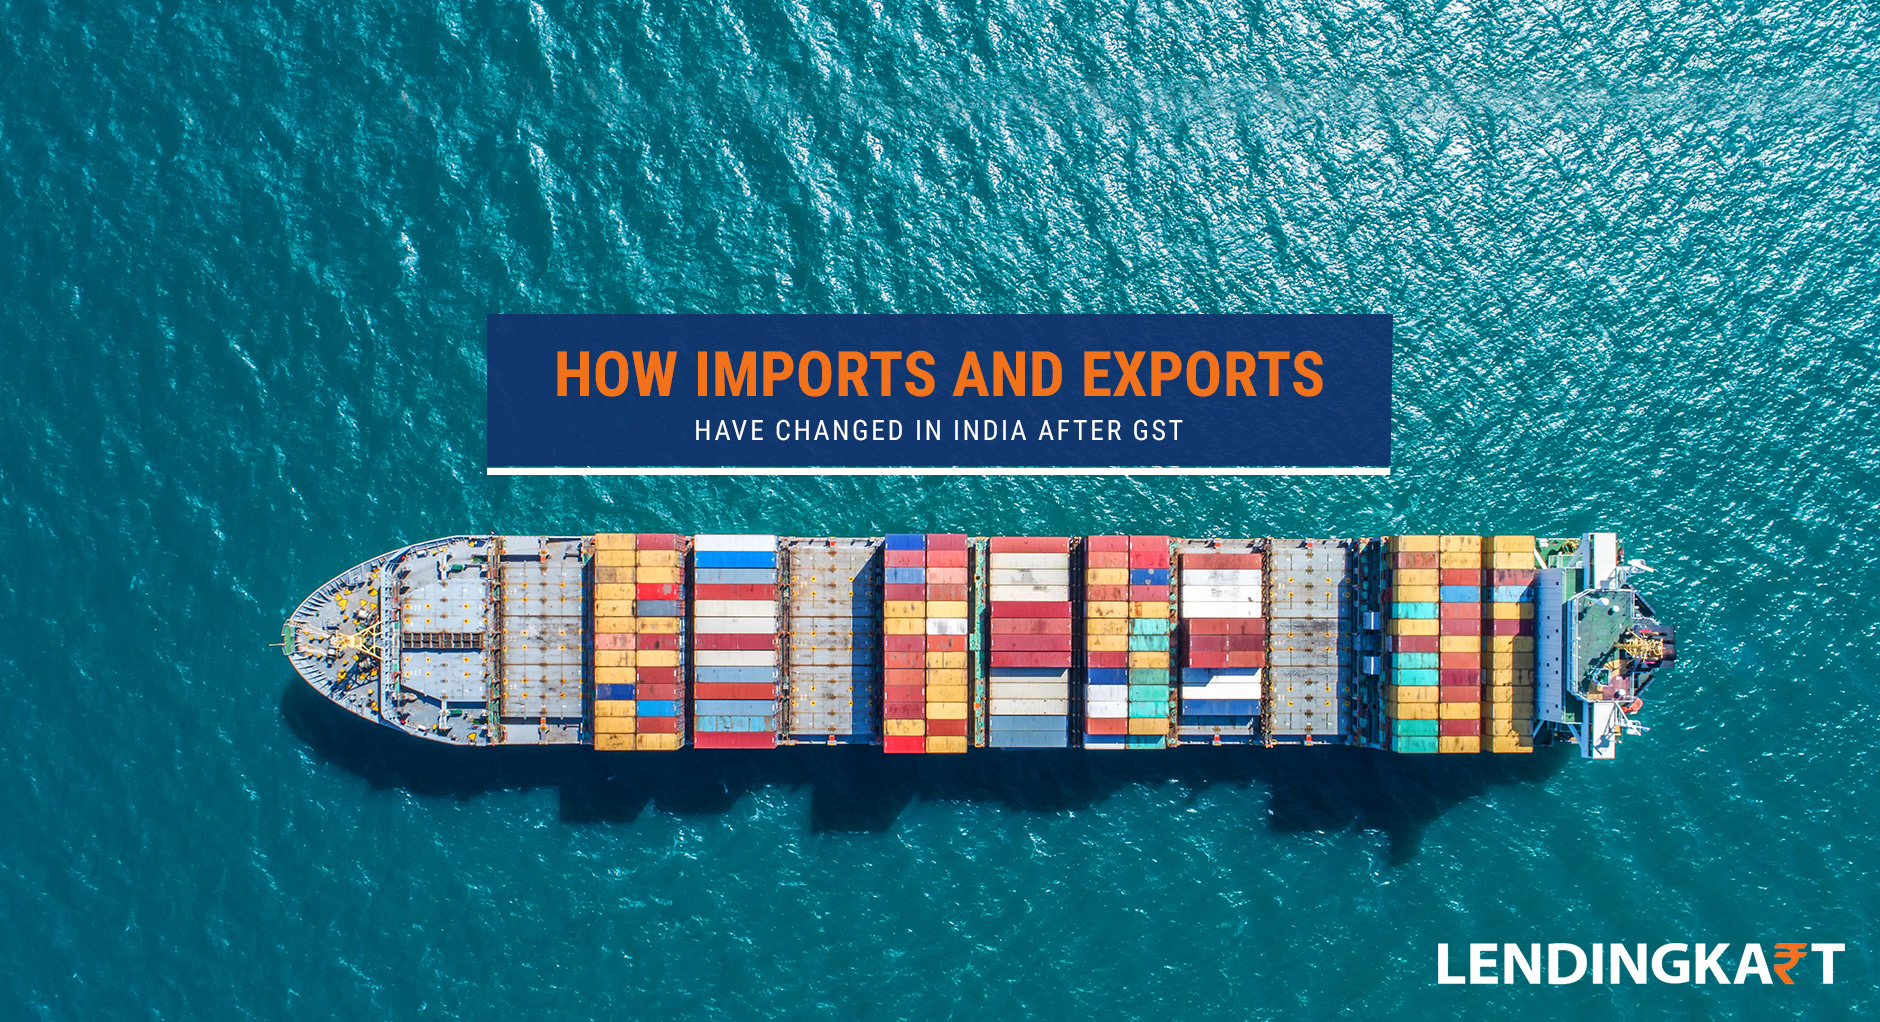 How Imports and Exports have changed in India After GST